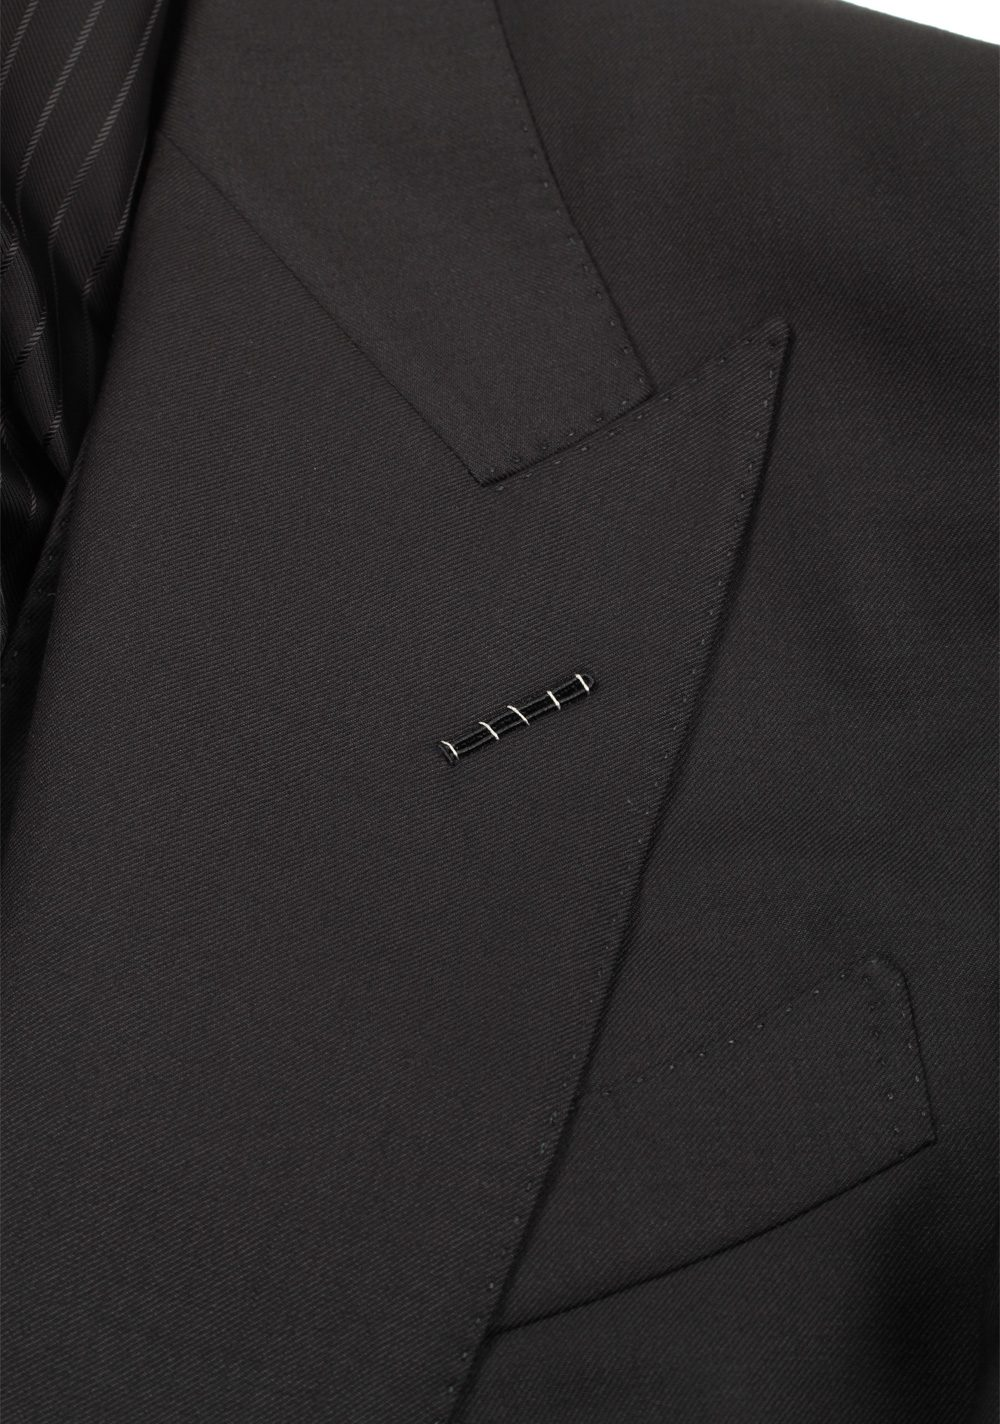 TOM FORD Windsor Black 3 Piece Suit Size 50 / 40R U.S. Wool | Costume Limité